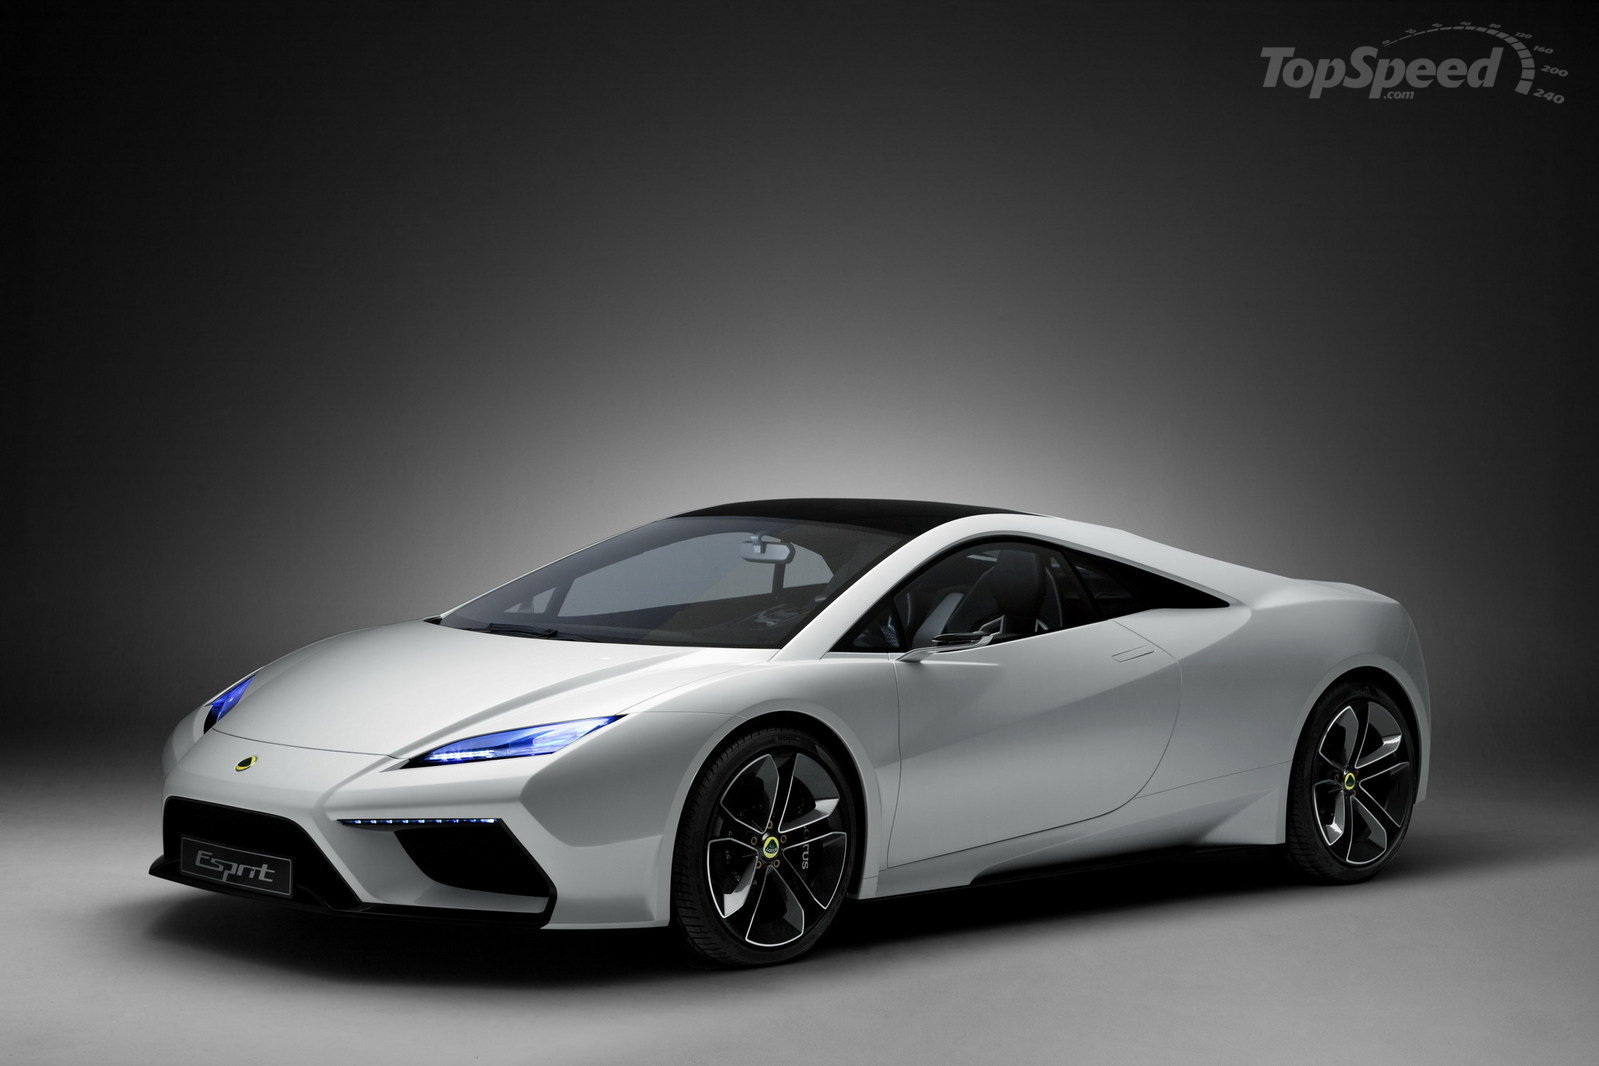 2015 lotus esprit superleggera review top speed. Black Bedroom Furniture Sets. Home Design Ideas